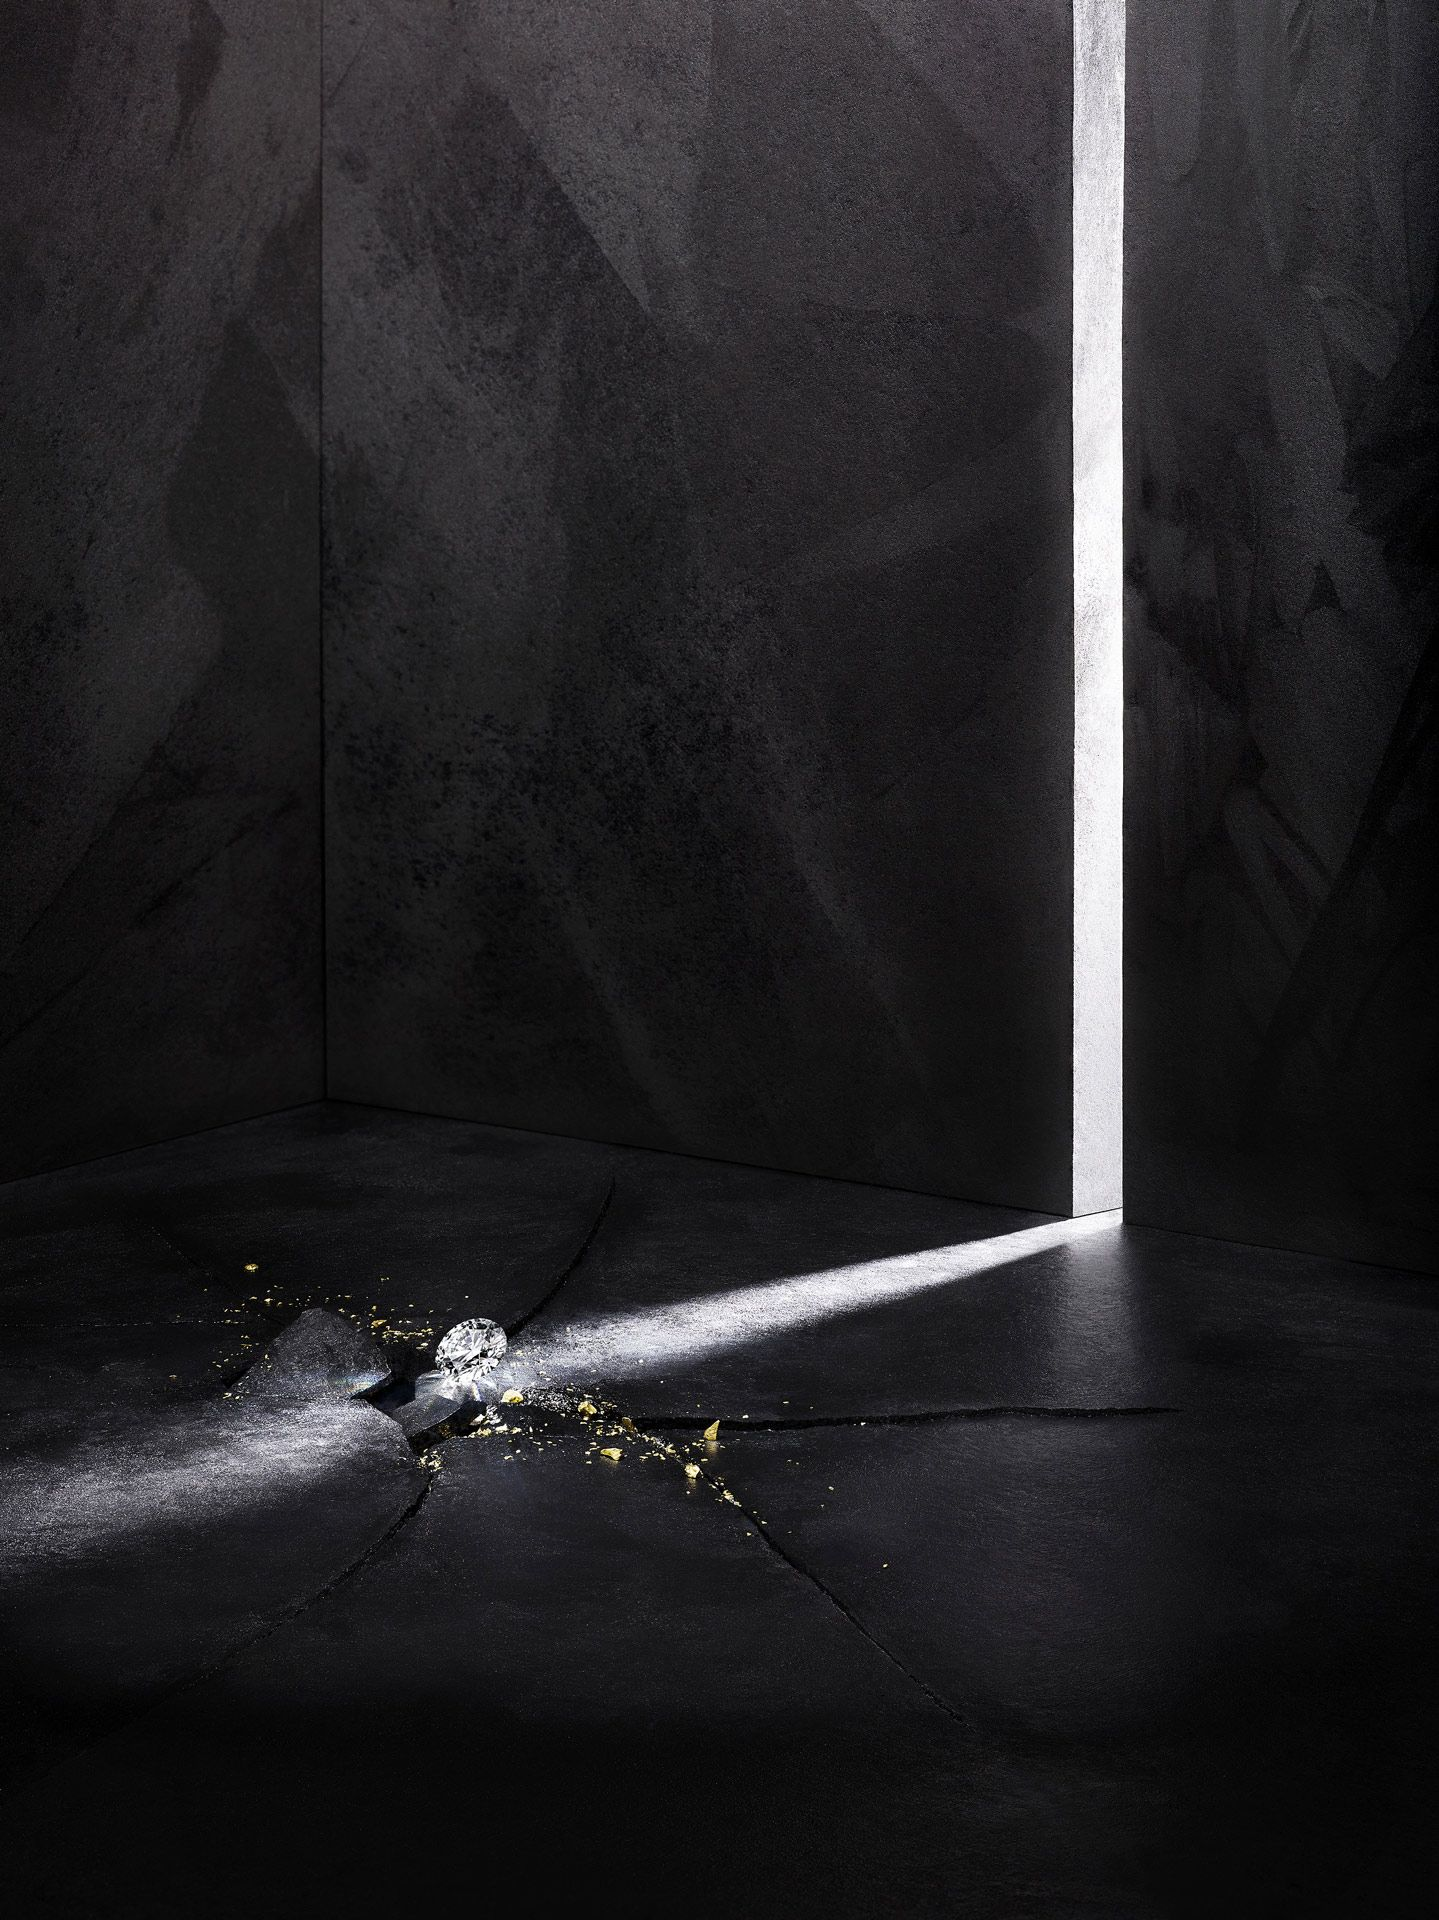 diamond in ray of light in crack in the ground by MAthieu Levesque for Morrier